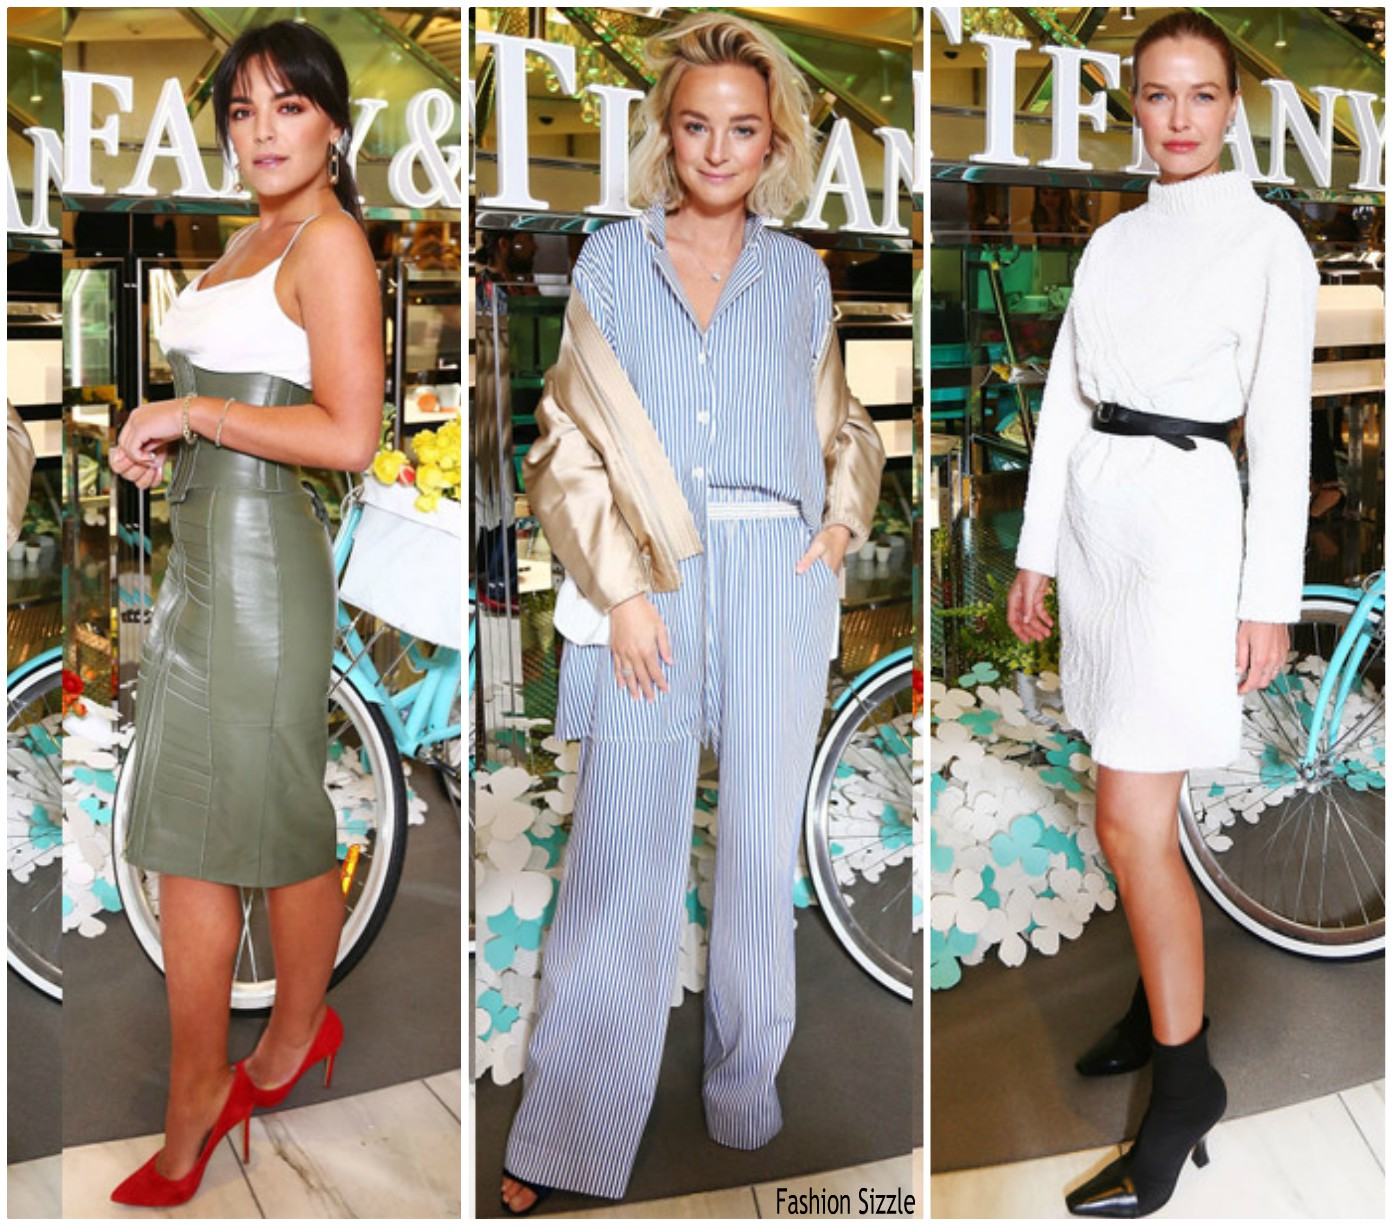 tiffany-in-co-paper-flowers-melbourne-launch